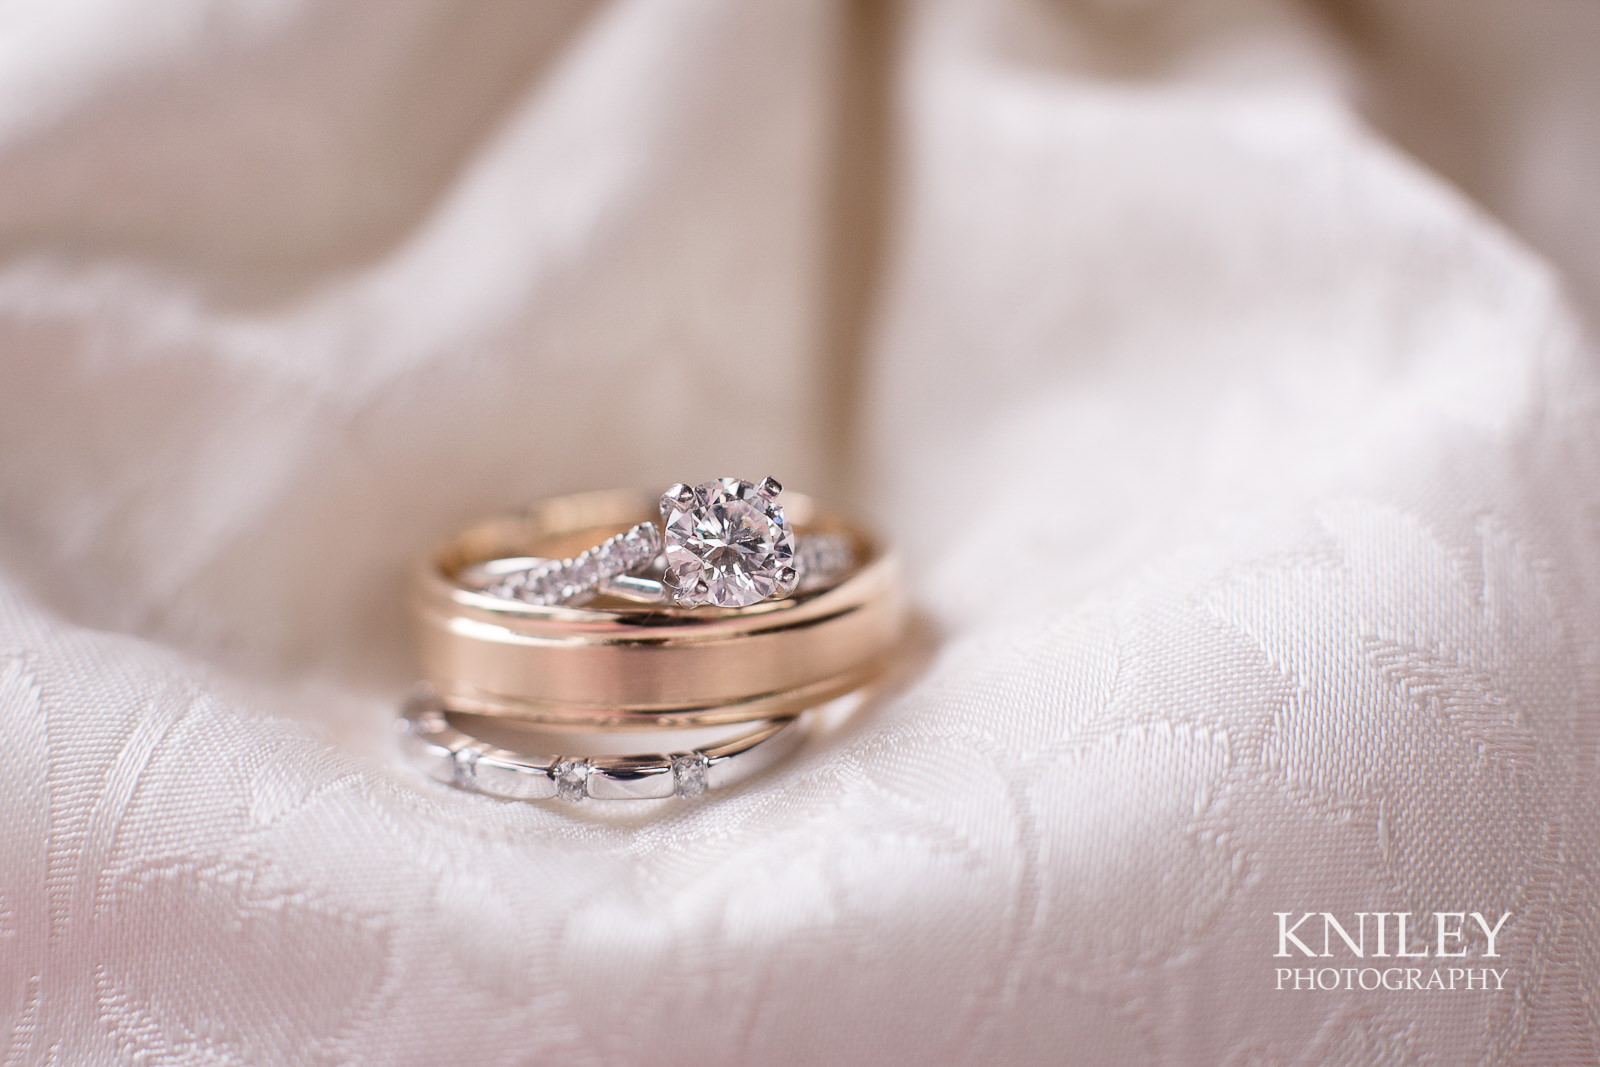 009 - Ravenwood Golf Club wedding pictures - Rochester NY - Kniley Photography - IMG_8346.jpg